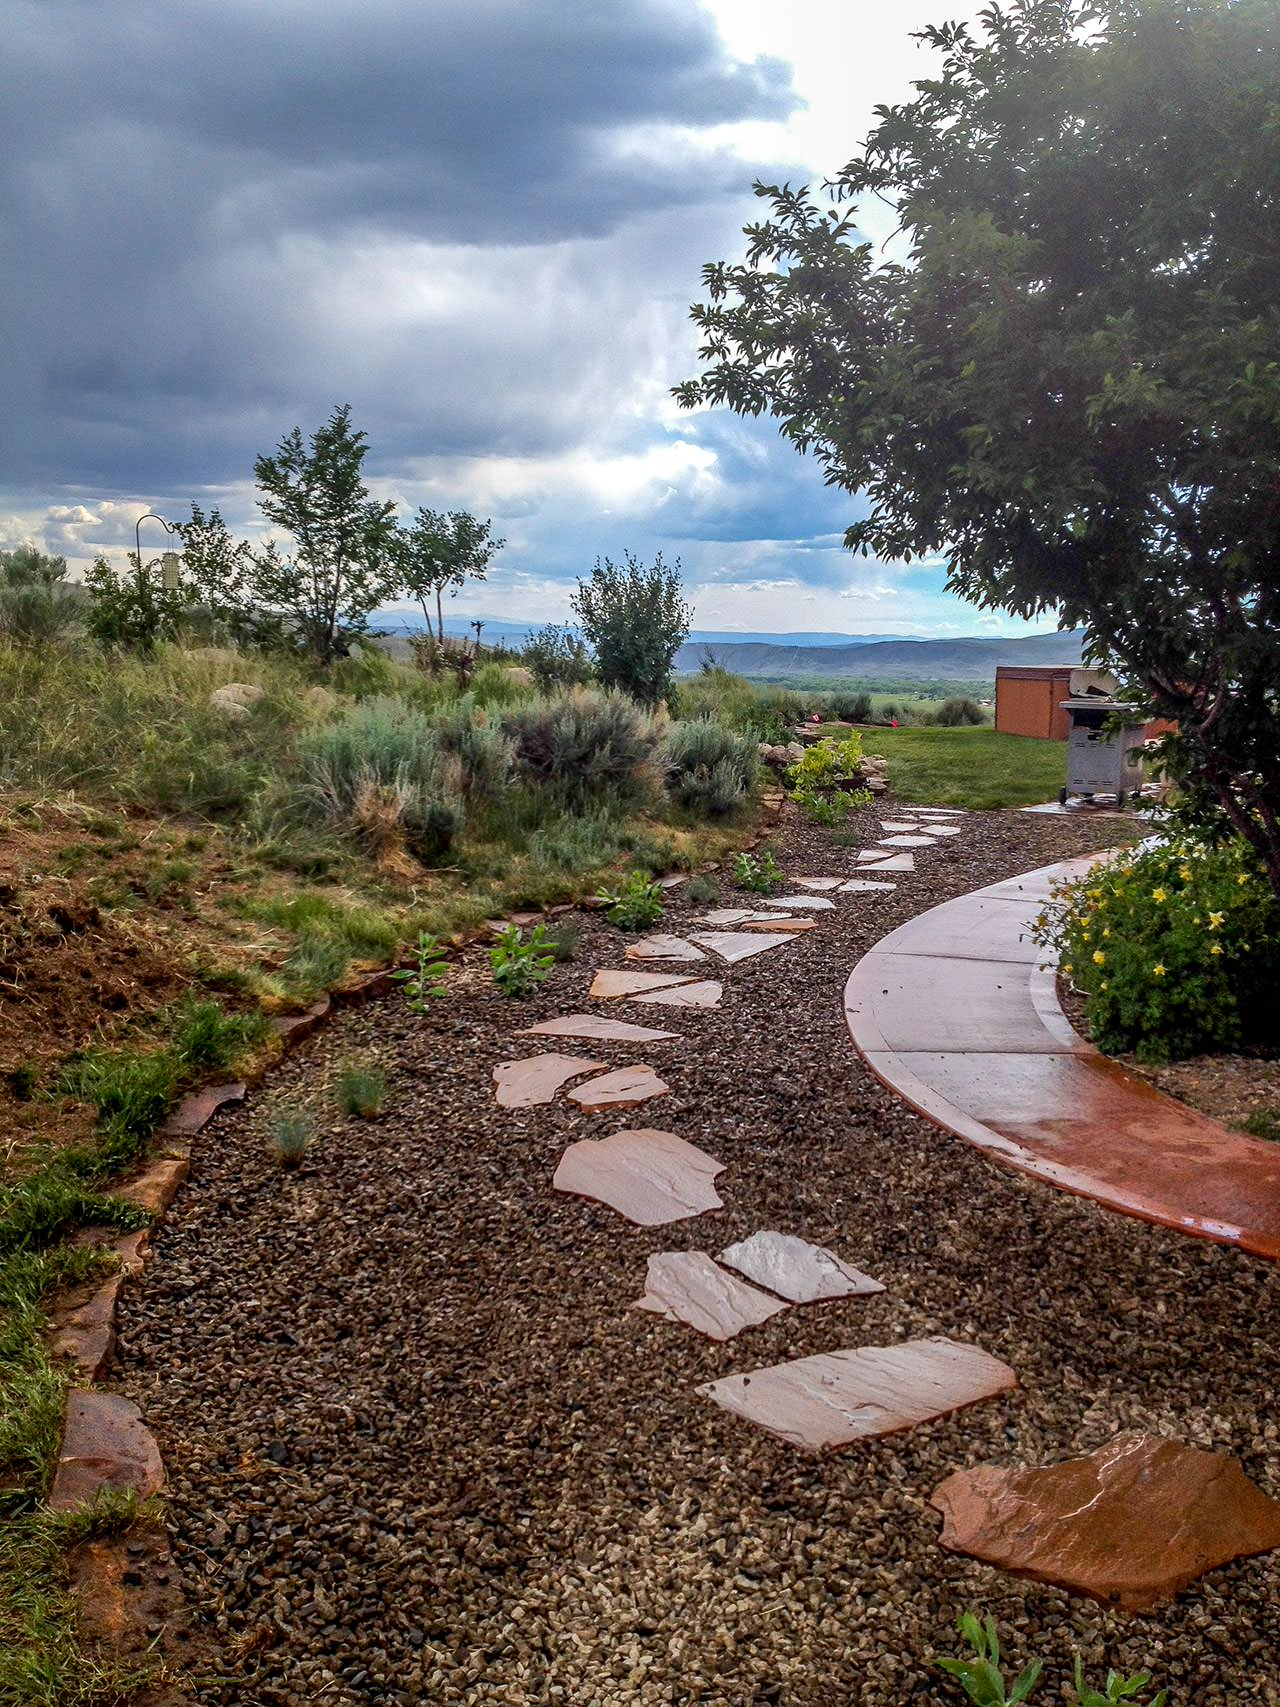 15 Stunning Rustic Landscape Designs That Will Take Your ... on Landscape Design Ideas  id=86767